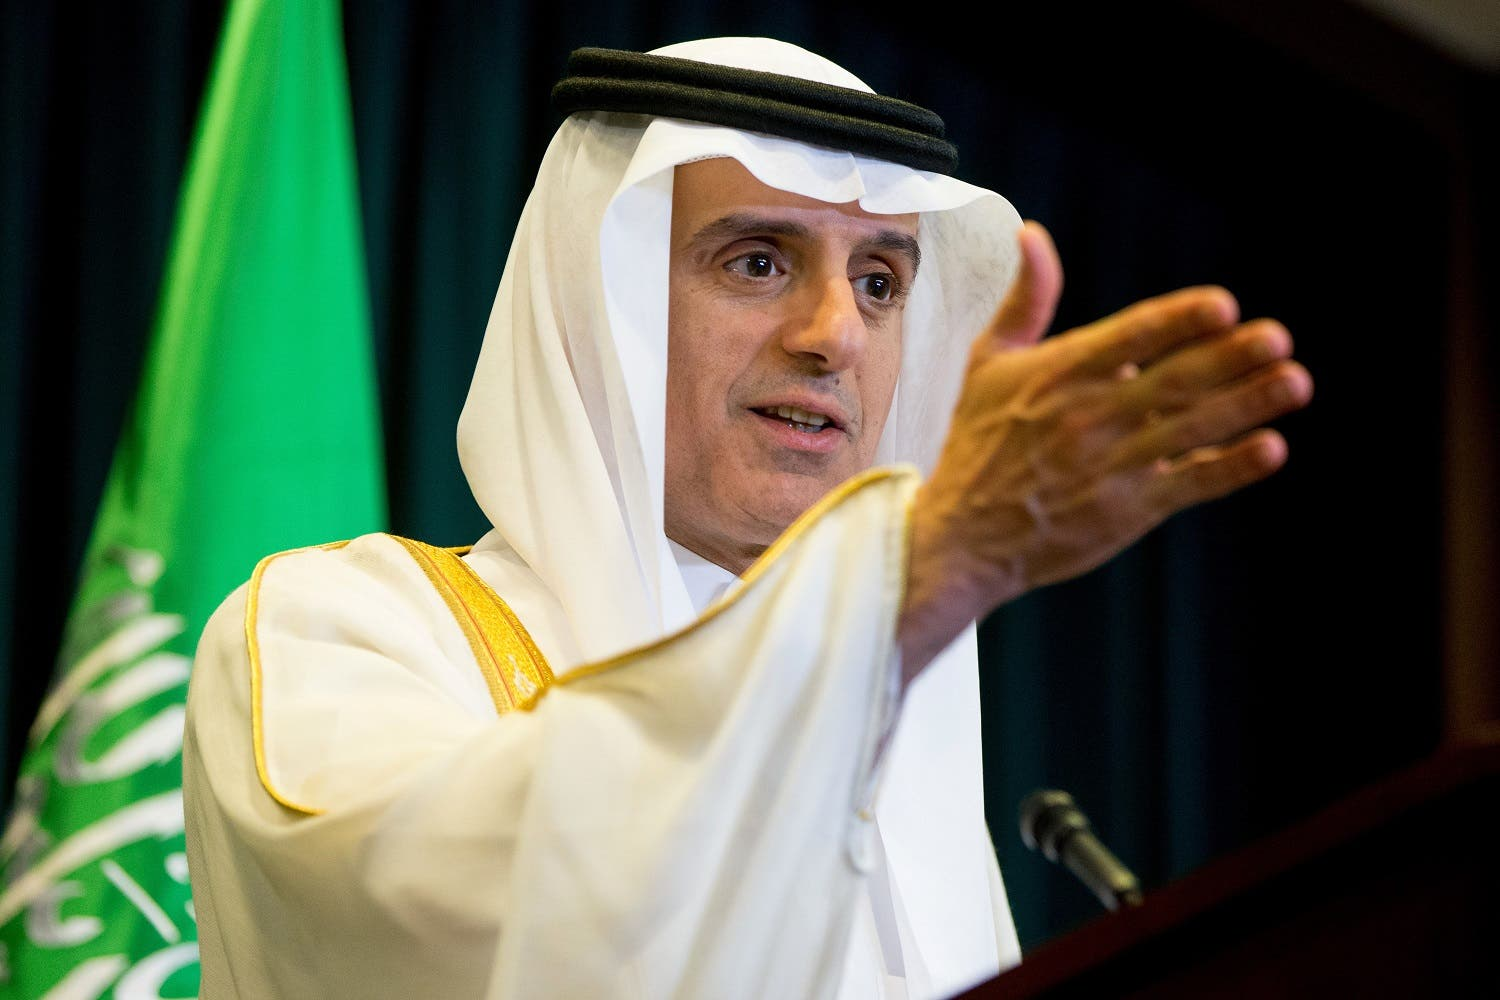 Saudi Arabia Foreign Minister Adel al-Jubeir speaks at a news conference at the Saudi Arabian Embassy in Washington, Friday, June 17, 2016. (AP)